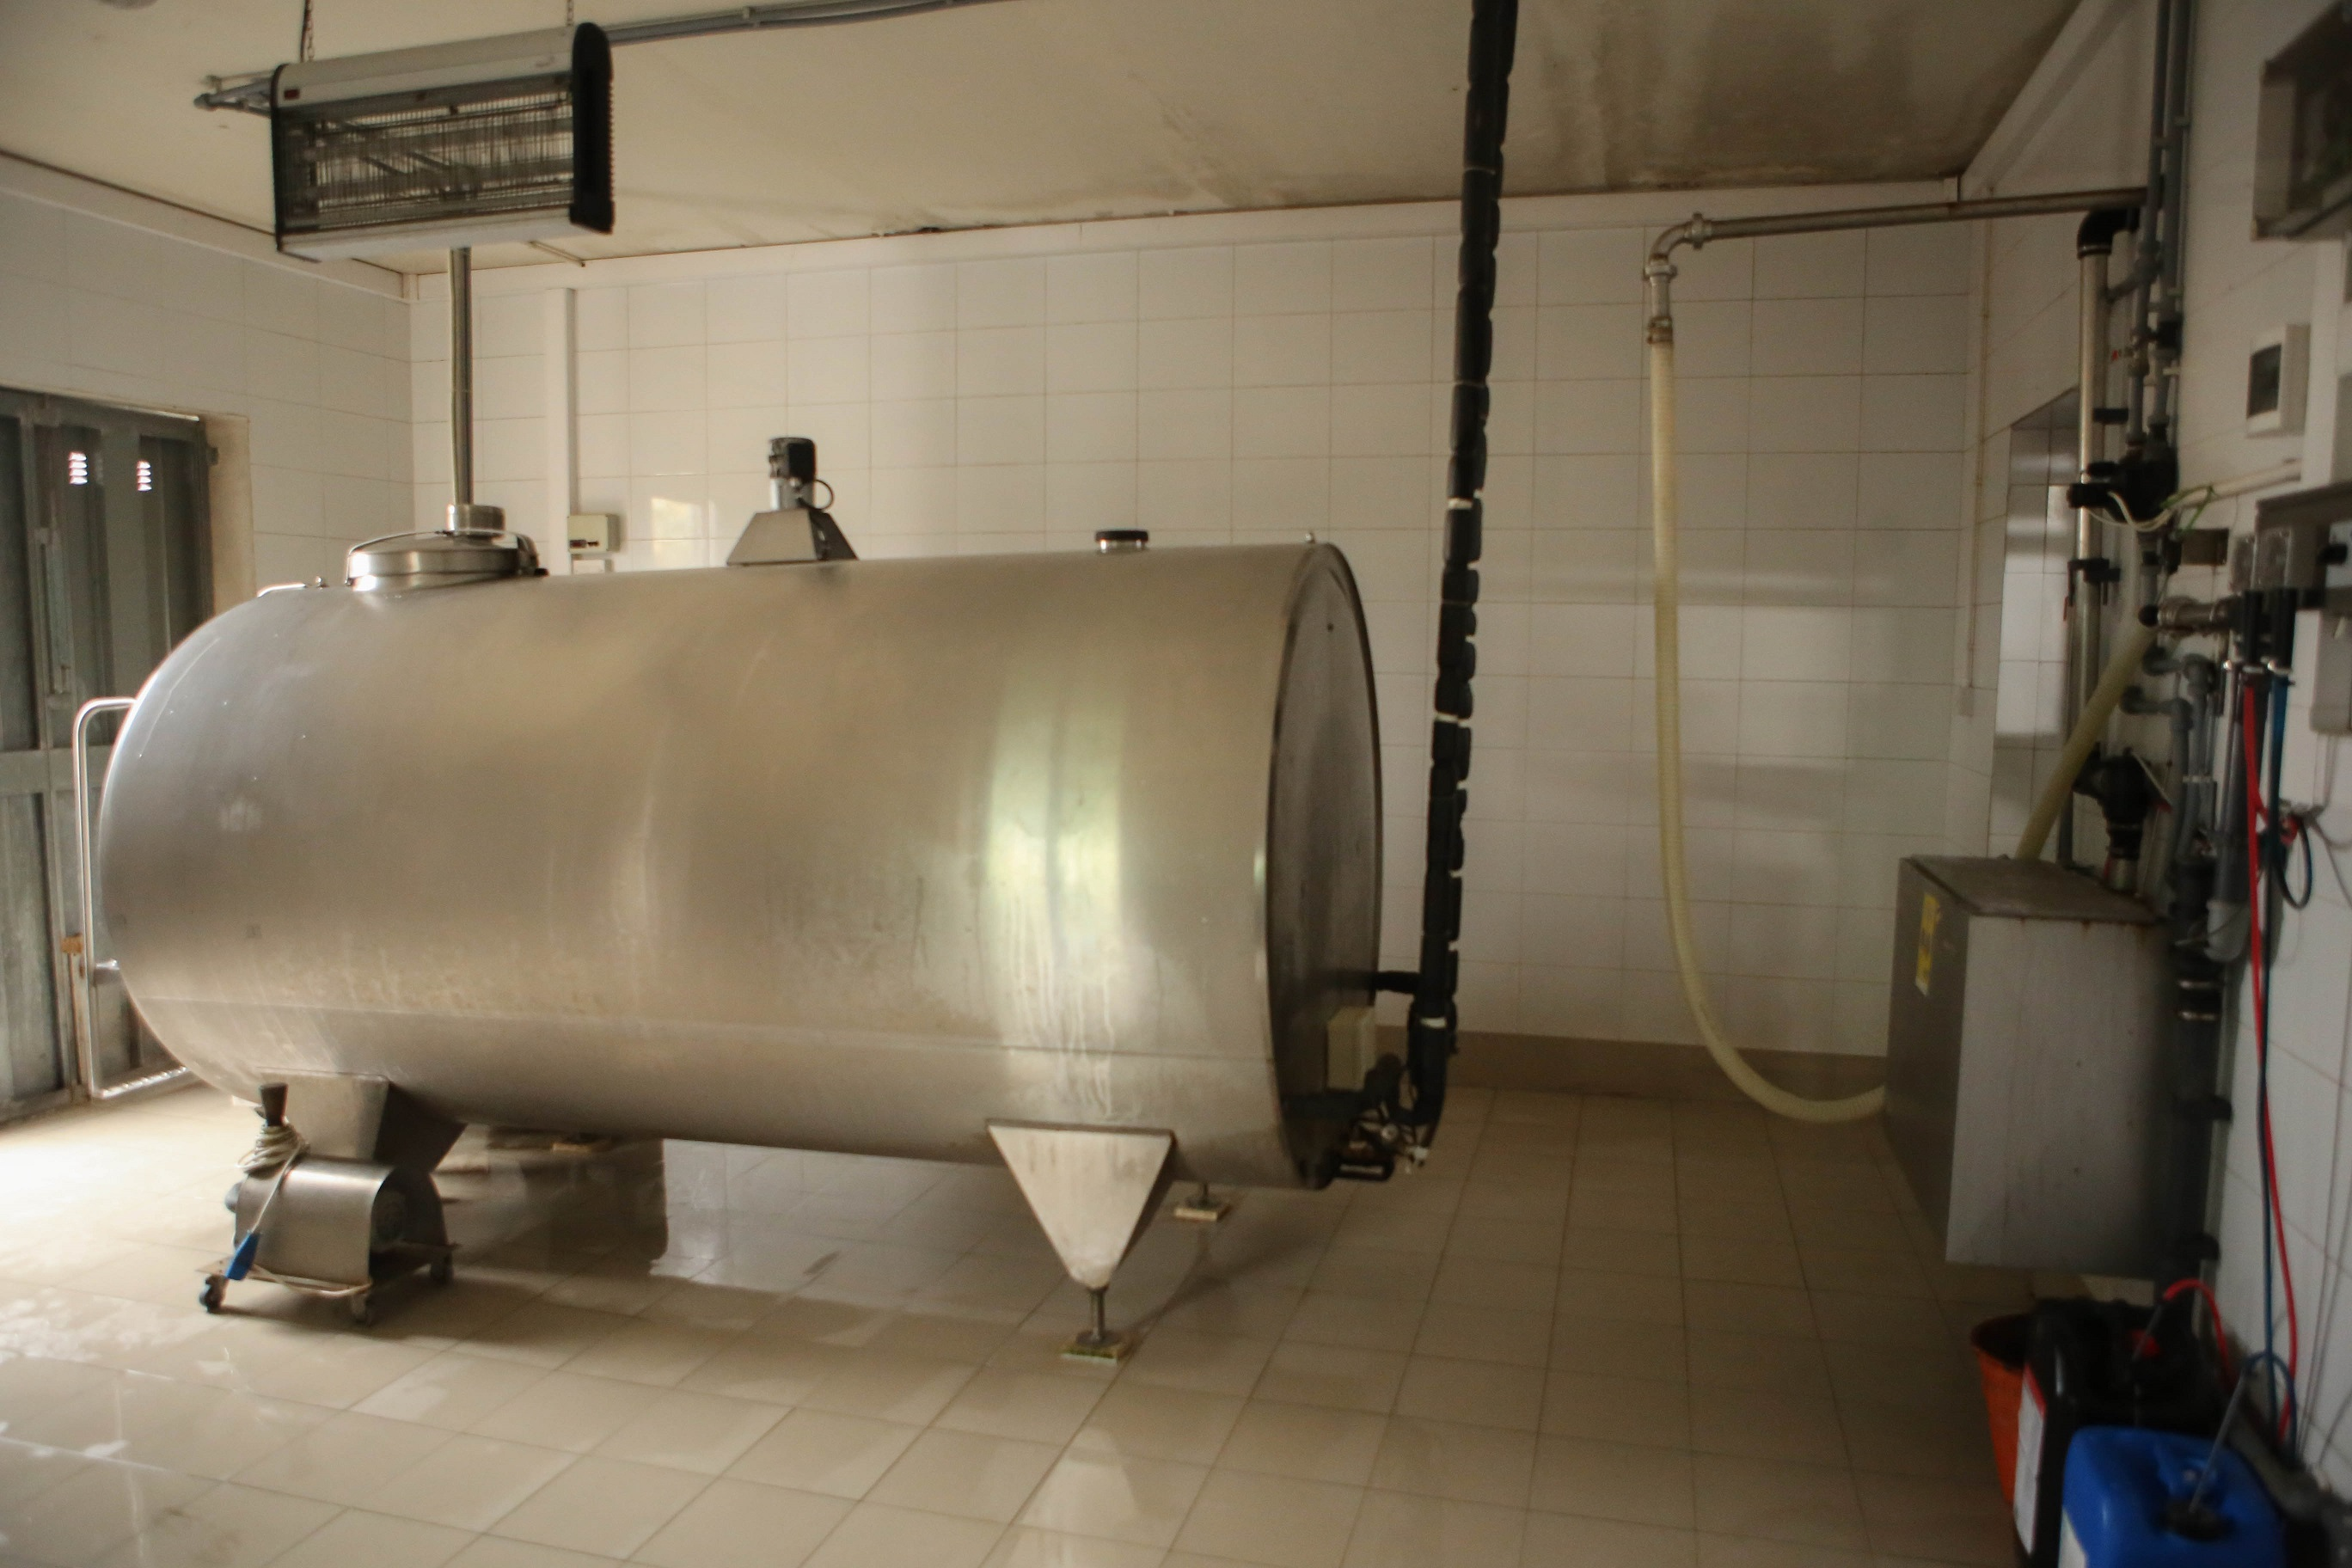 The cooler tank were all the milk is kept at a good temperature, until it is transported to the MDP